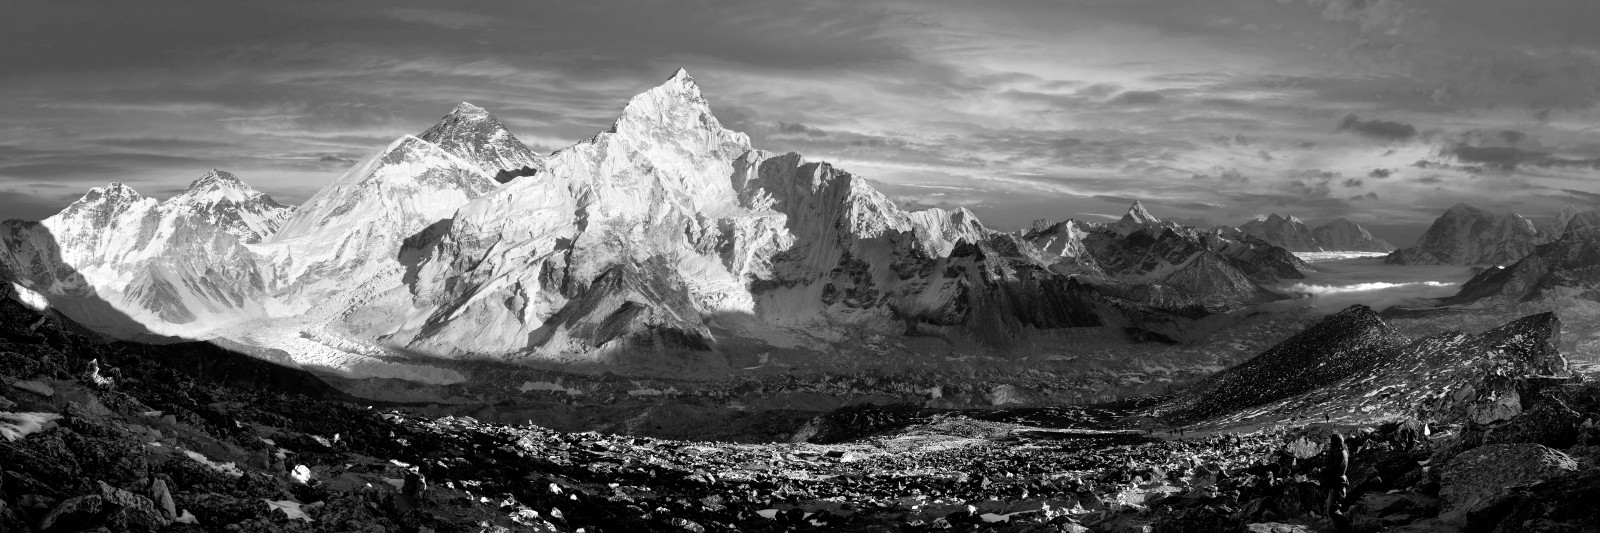 evening black and white panoramic view of Everest and Nuptse from Kala Patthar – trekking to Everest base camp – Nepal